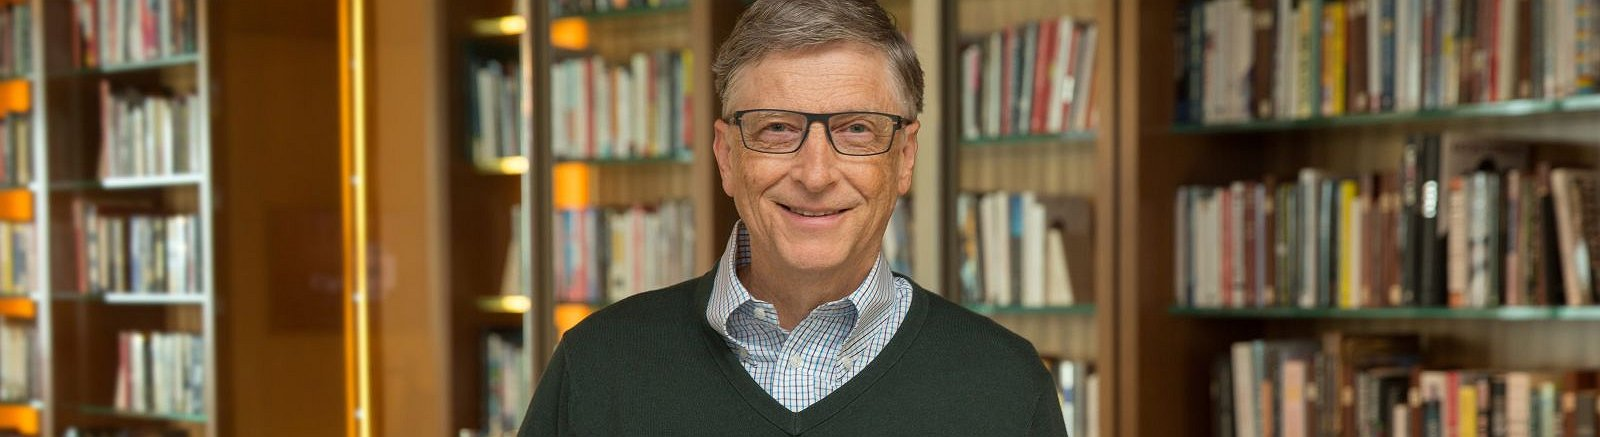 Bill Gates recommends five books to read this summer